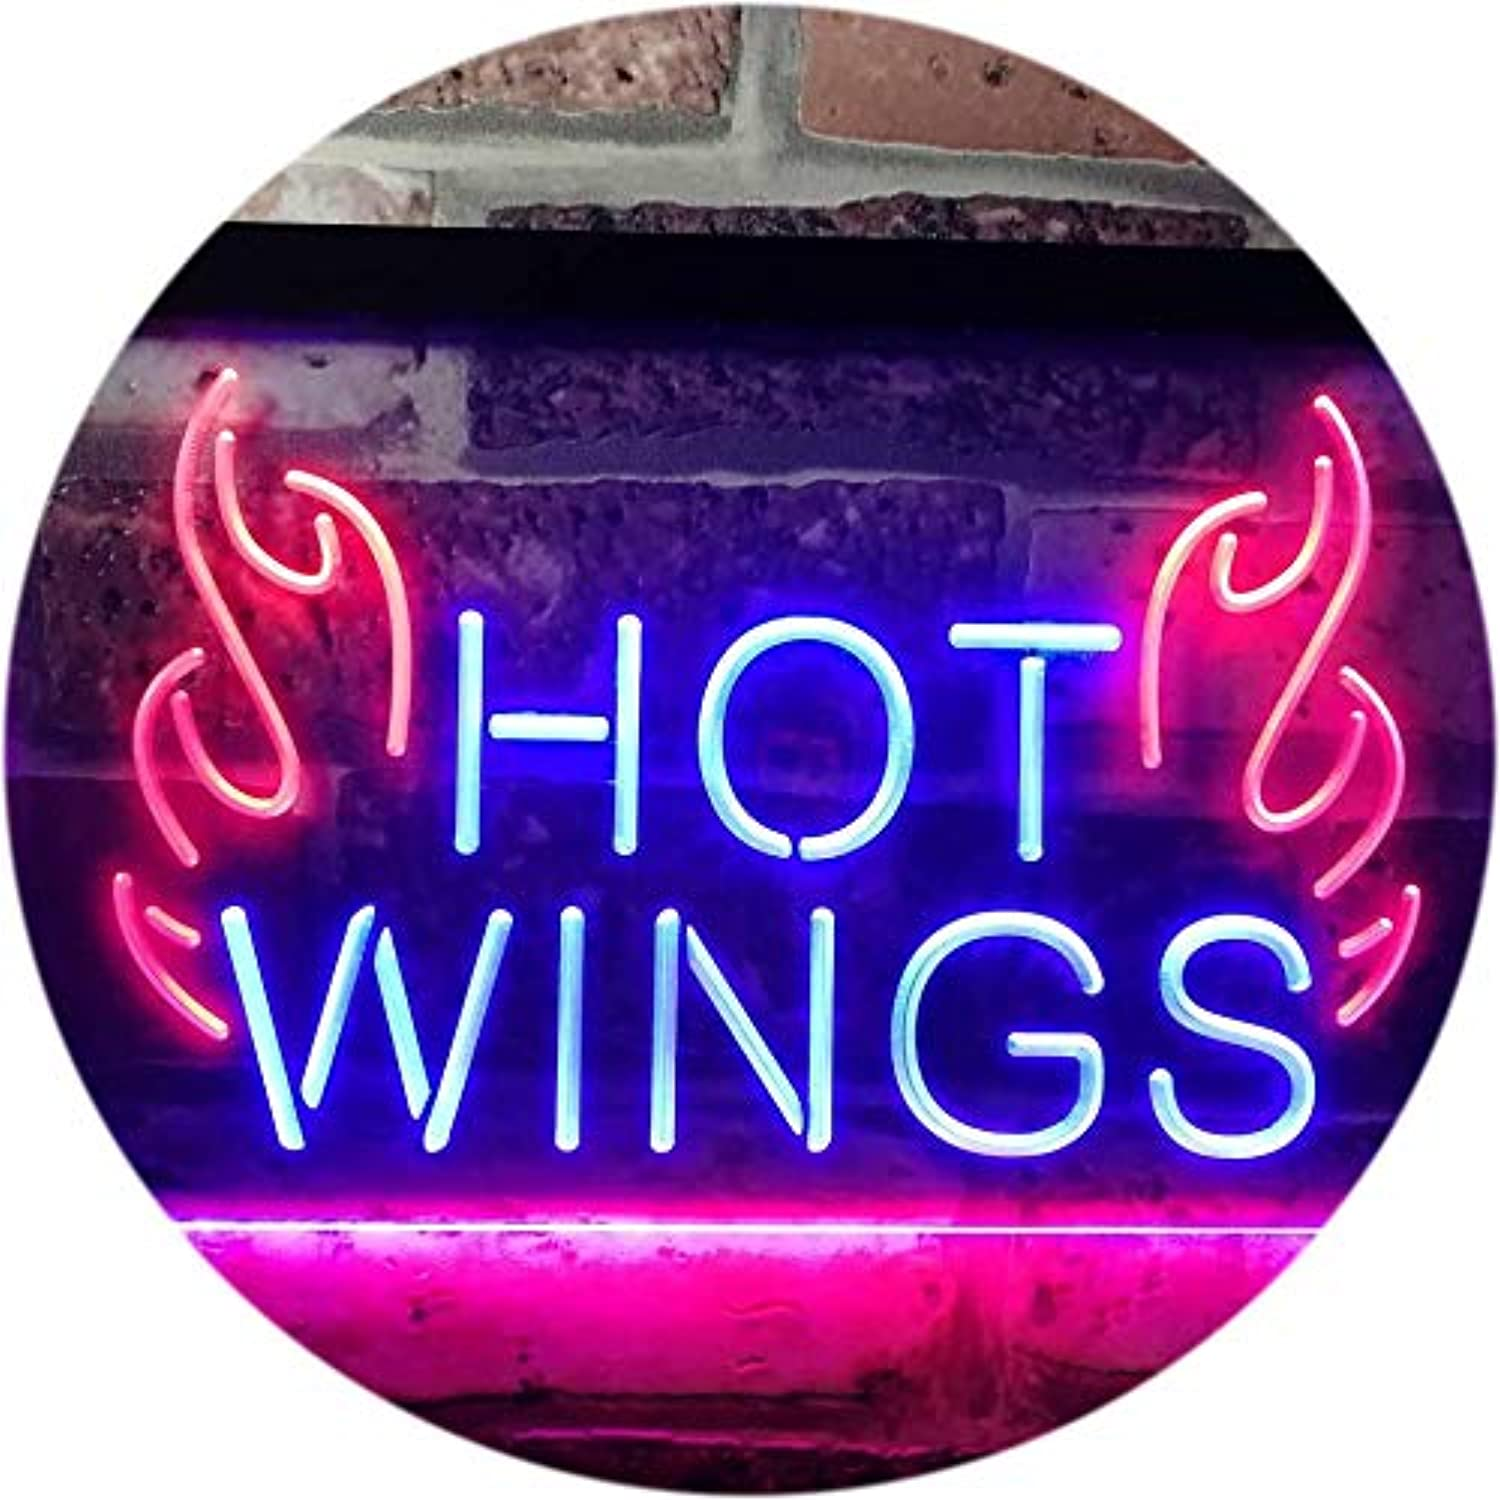 ADVPRO Hot Wings Fast Food Shop Open Display Dual Farbe LED Barlicht Neonlicht Lichtwerbung Neon Sign rot & Blau 16  x 12  st6s43-i3154-rb